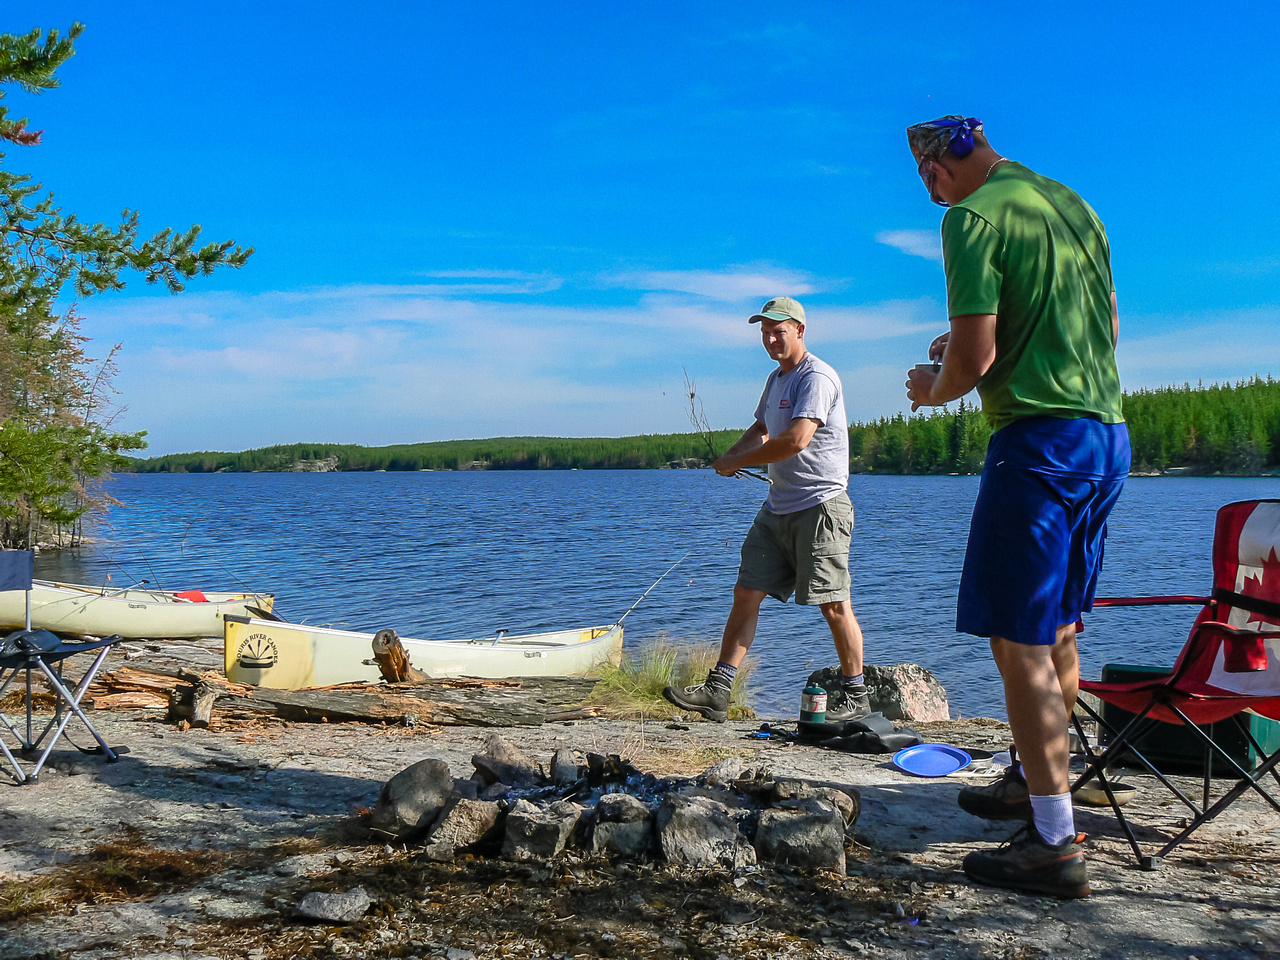 Chilling in camp on Wilson Lake Tuesday morning before starting the day. It's gonna be a hot one!